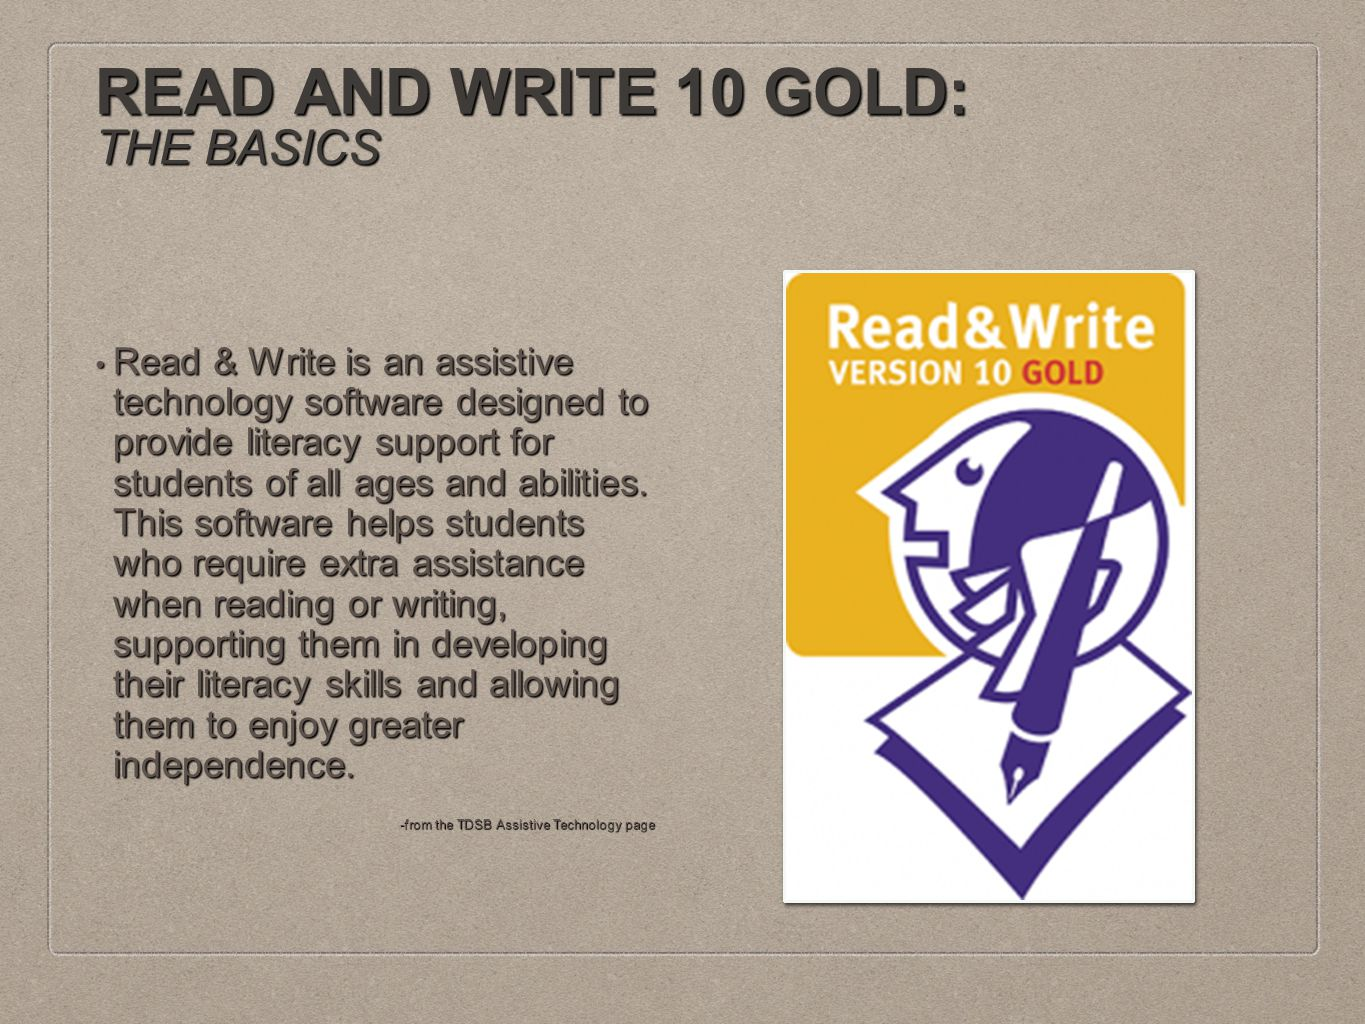 READ AND WRITE 10 GOLD: THE BASICS Read & Write is an assistive technology software designed to provide literacy support for students of all ages and abilities.